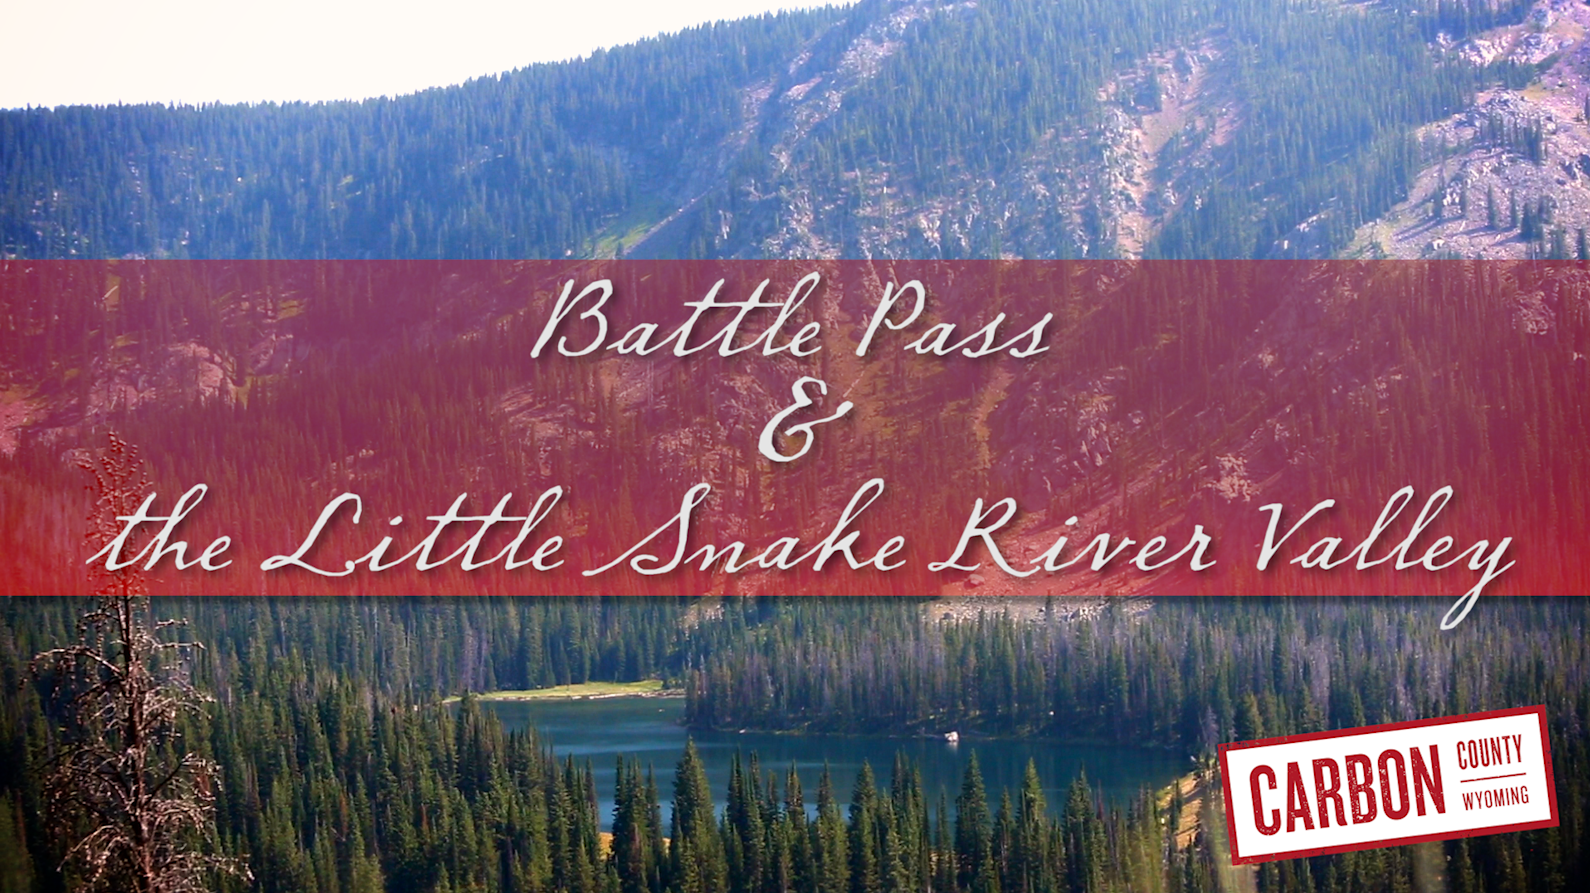 Battle Pass & the Snake River Valley. Producer/Editor Tom Laughlin